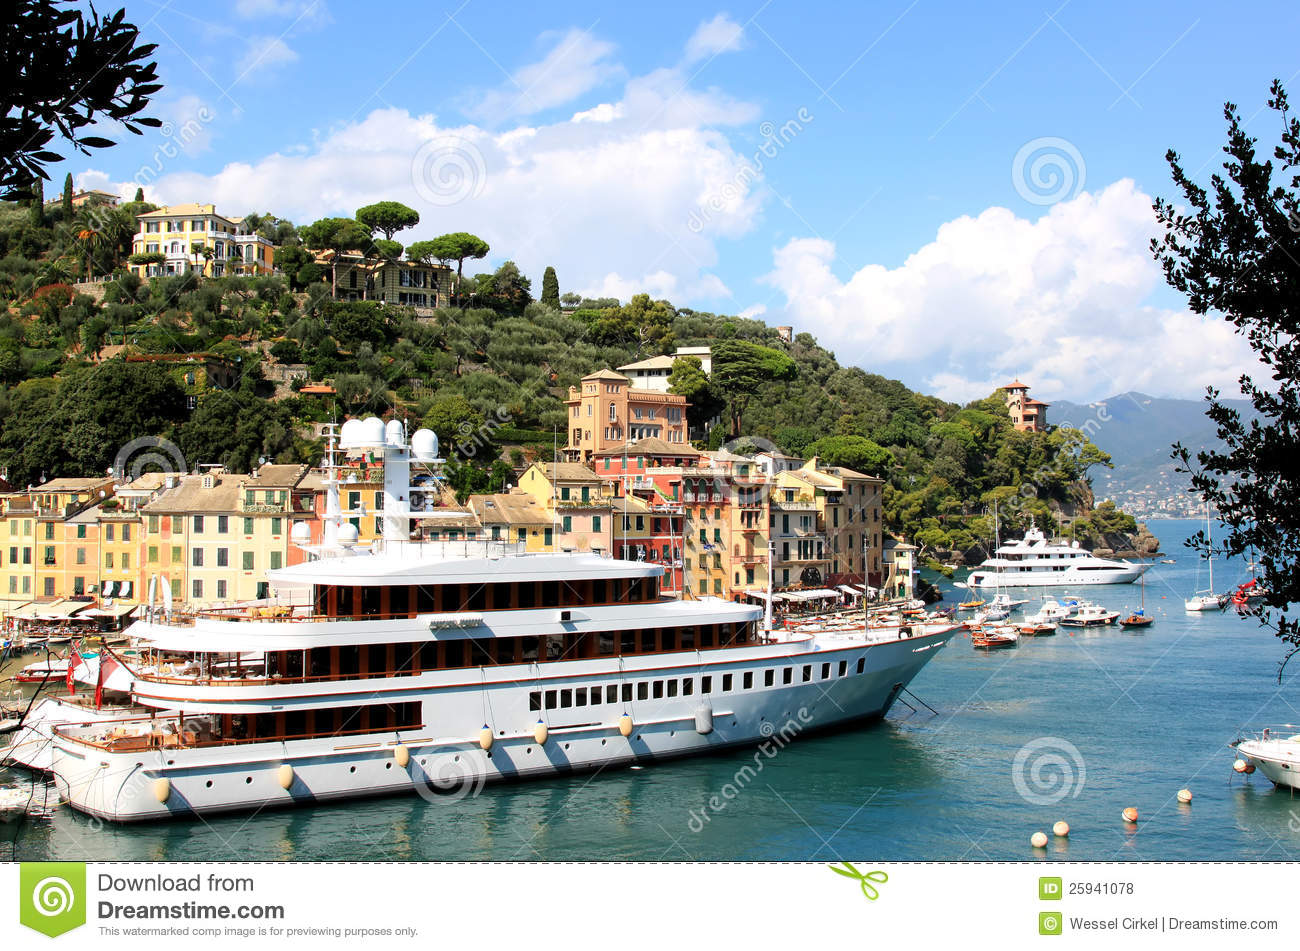 Luxury Yachts In The Harbour Of Portofino, Italy Royalty Free.